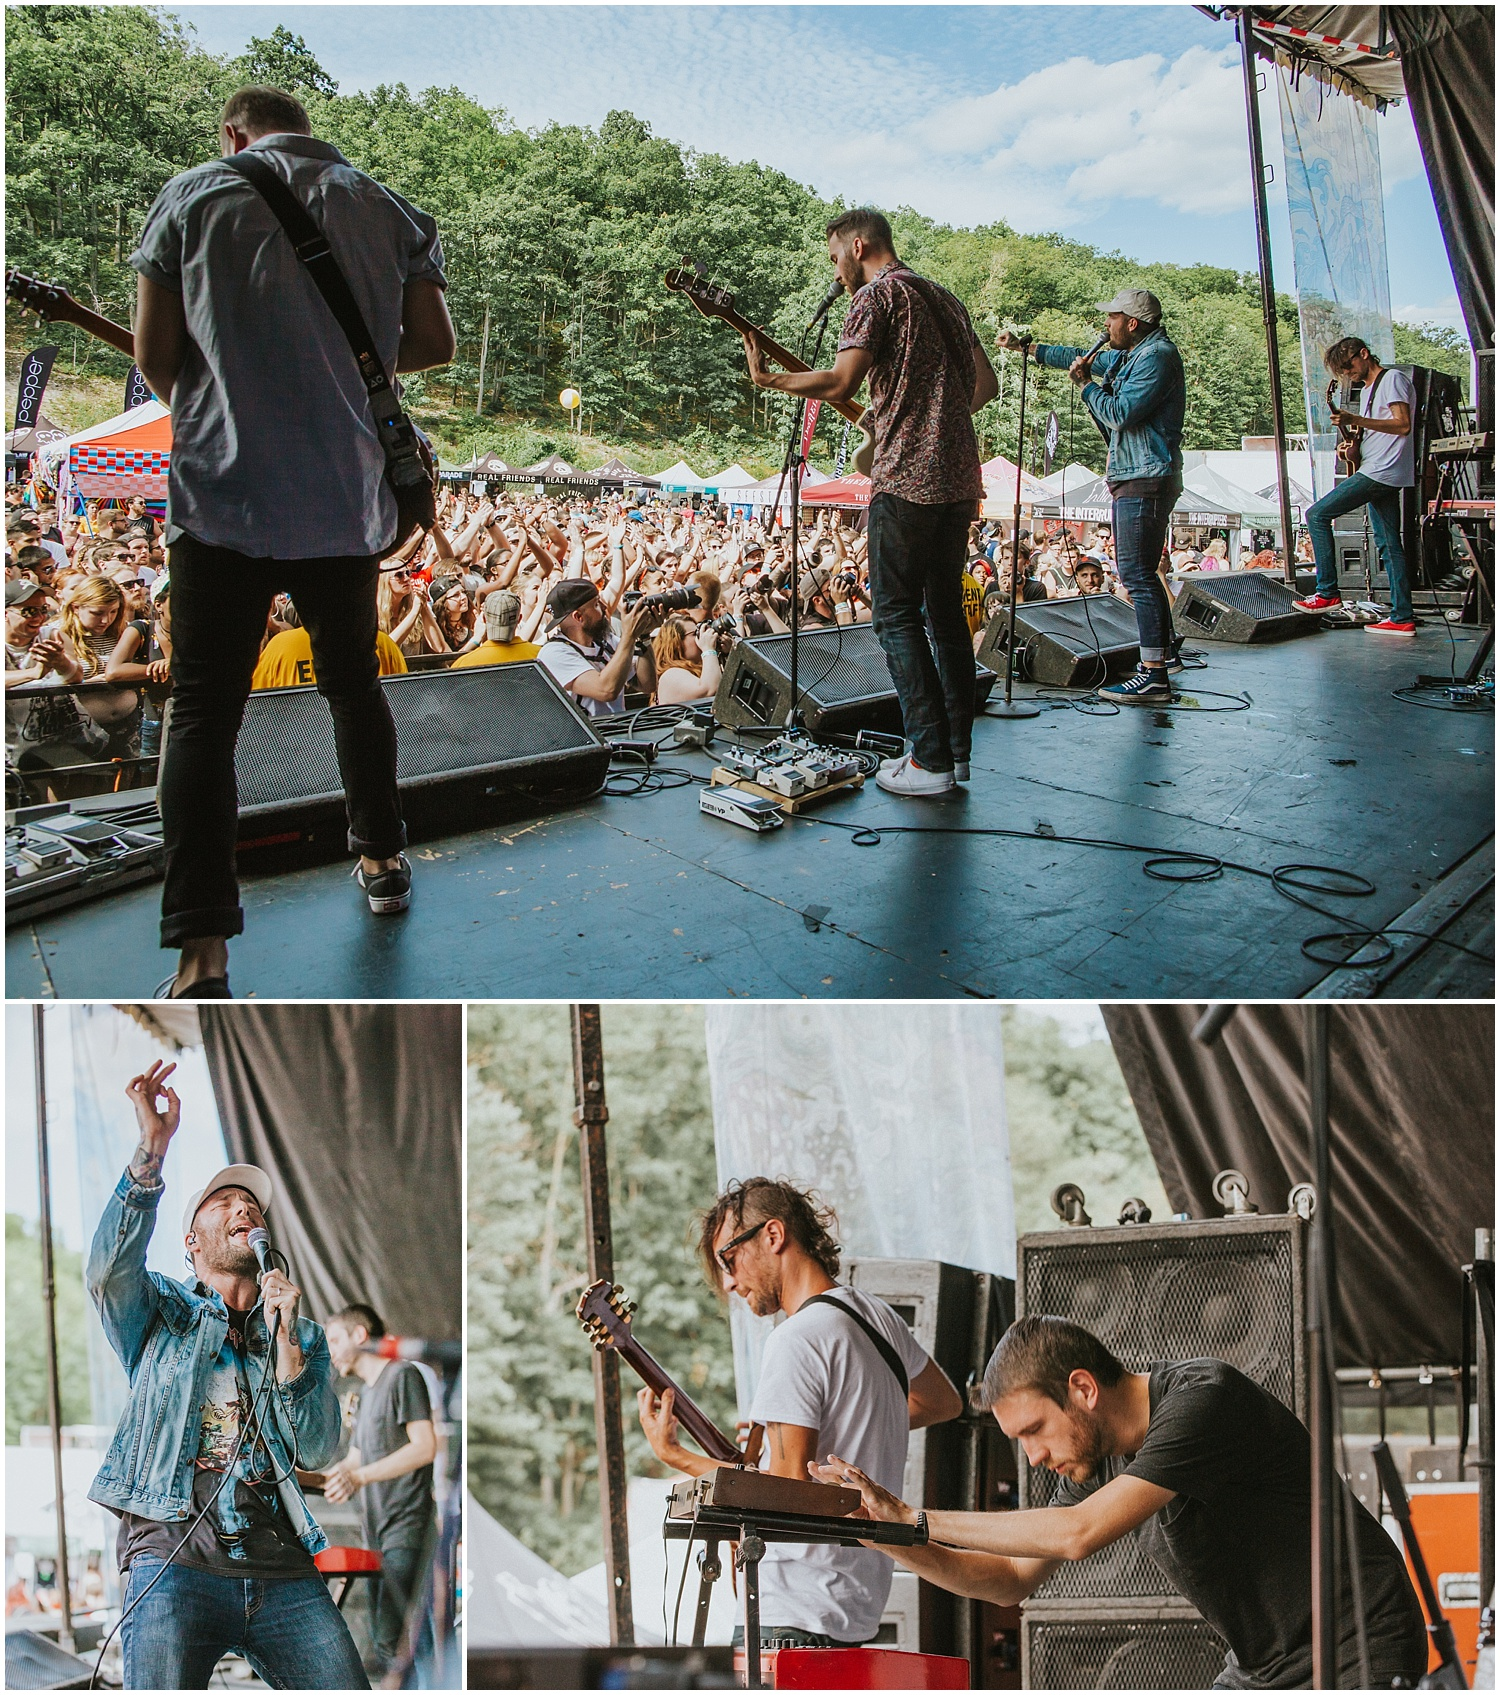 Emarosa | Warped Tour, Scranton PA | July 11, 2016